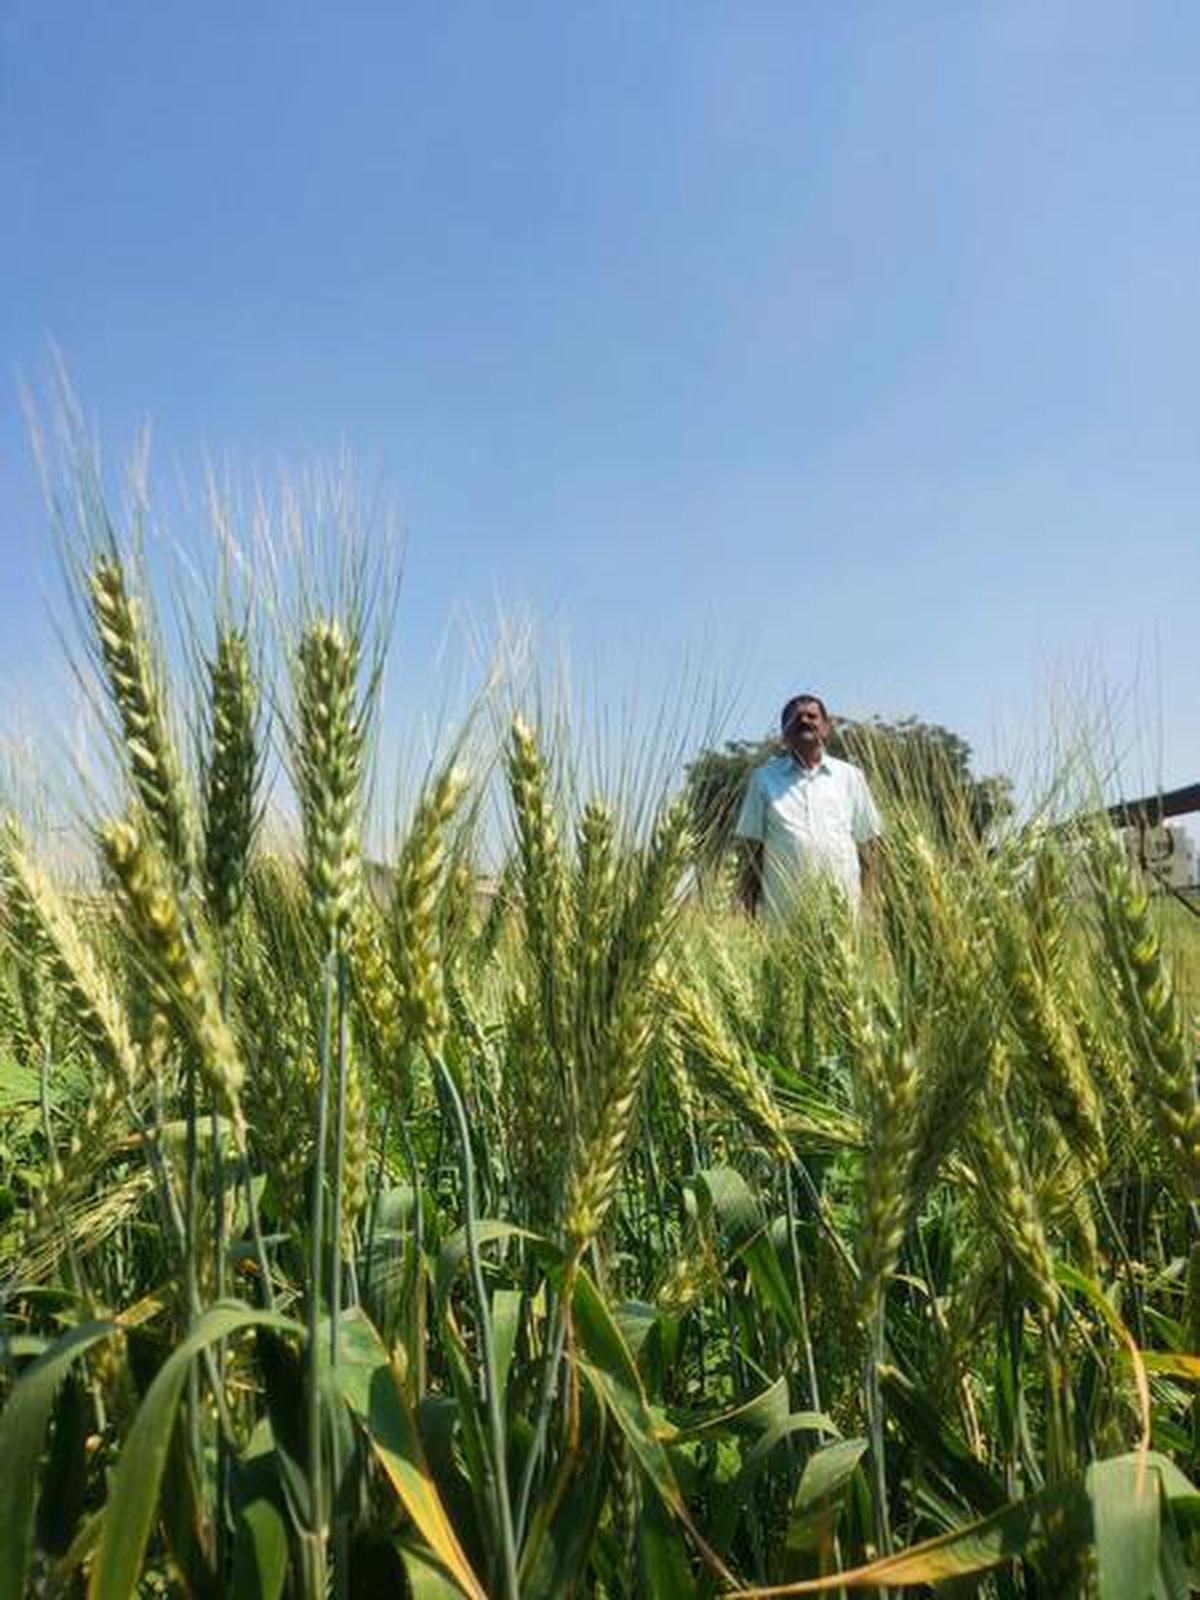 Hyderabad-based farmer Chintala Venkat Reddy wins patent for Vit D enriched rice and wheat